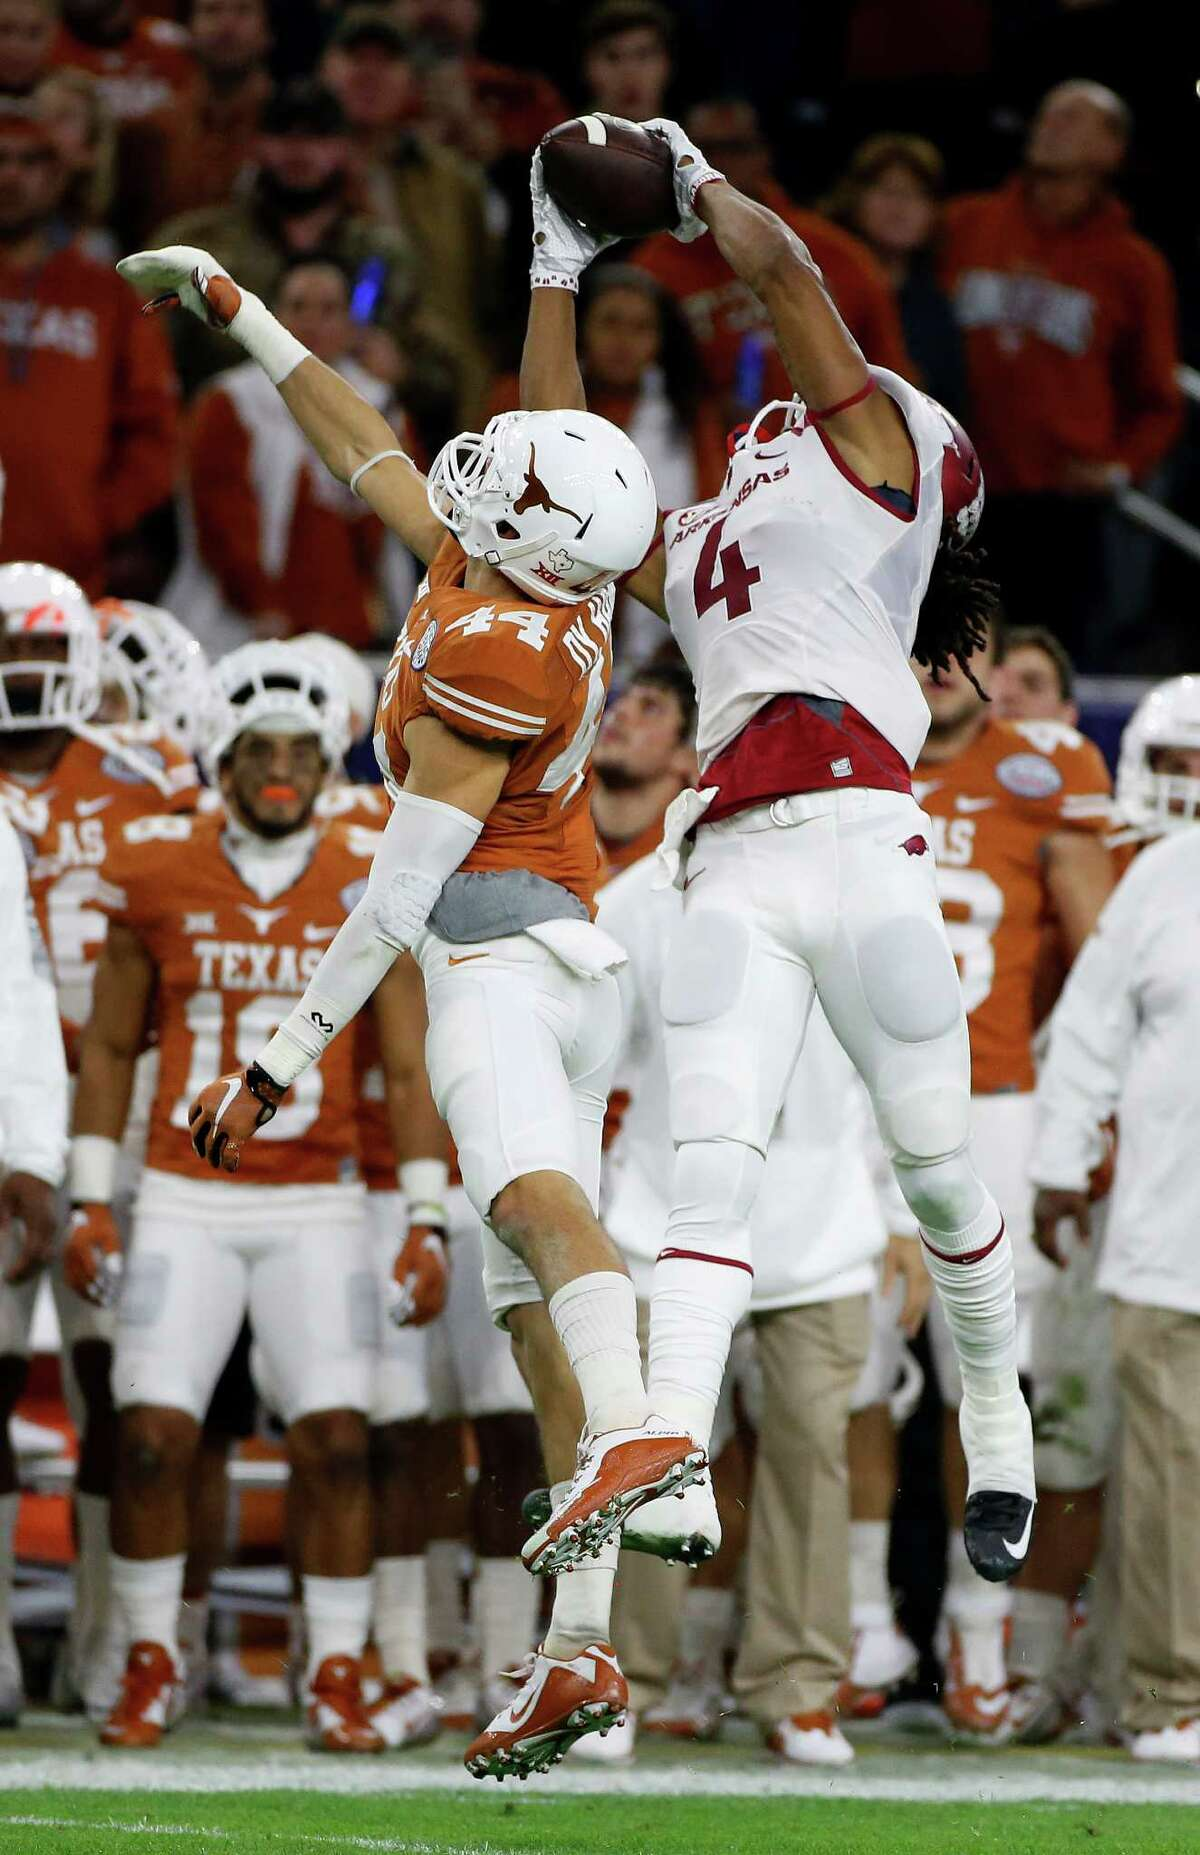 Arkansas wide receiver Keon Hatcher (4) catches a pass over Texas defensive back Dylan Haines (44) during the first quarter of the Texas Bowl at NRG Stadium on Dec. 29, 2014, in Houston.